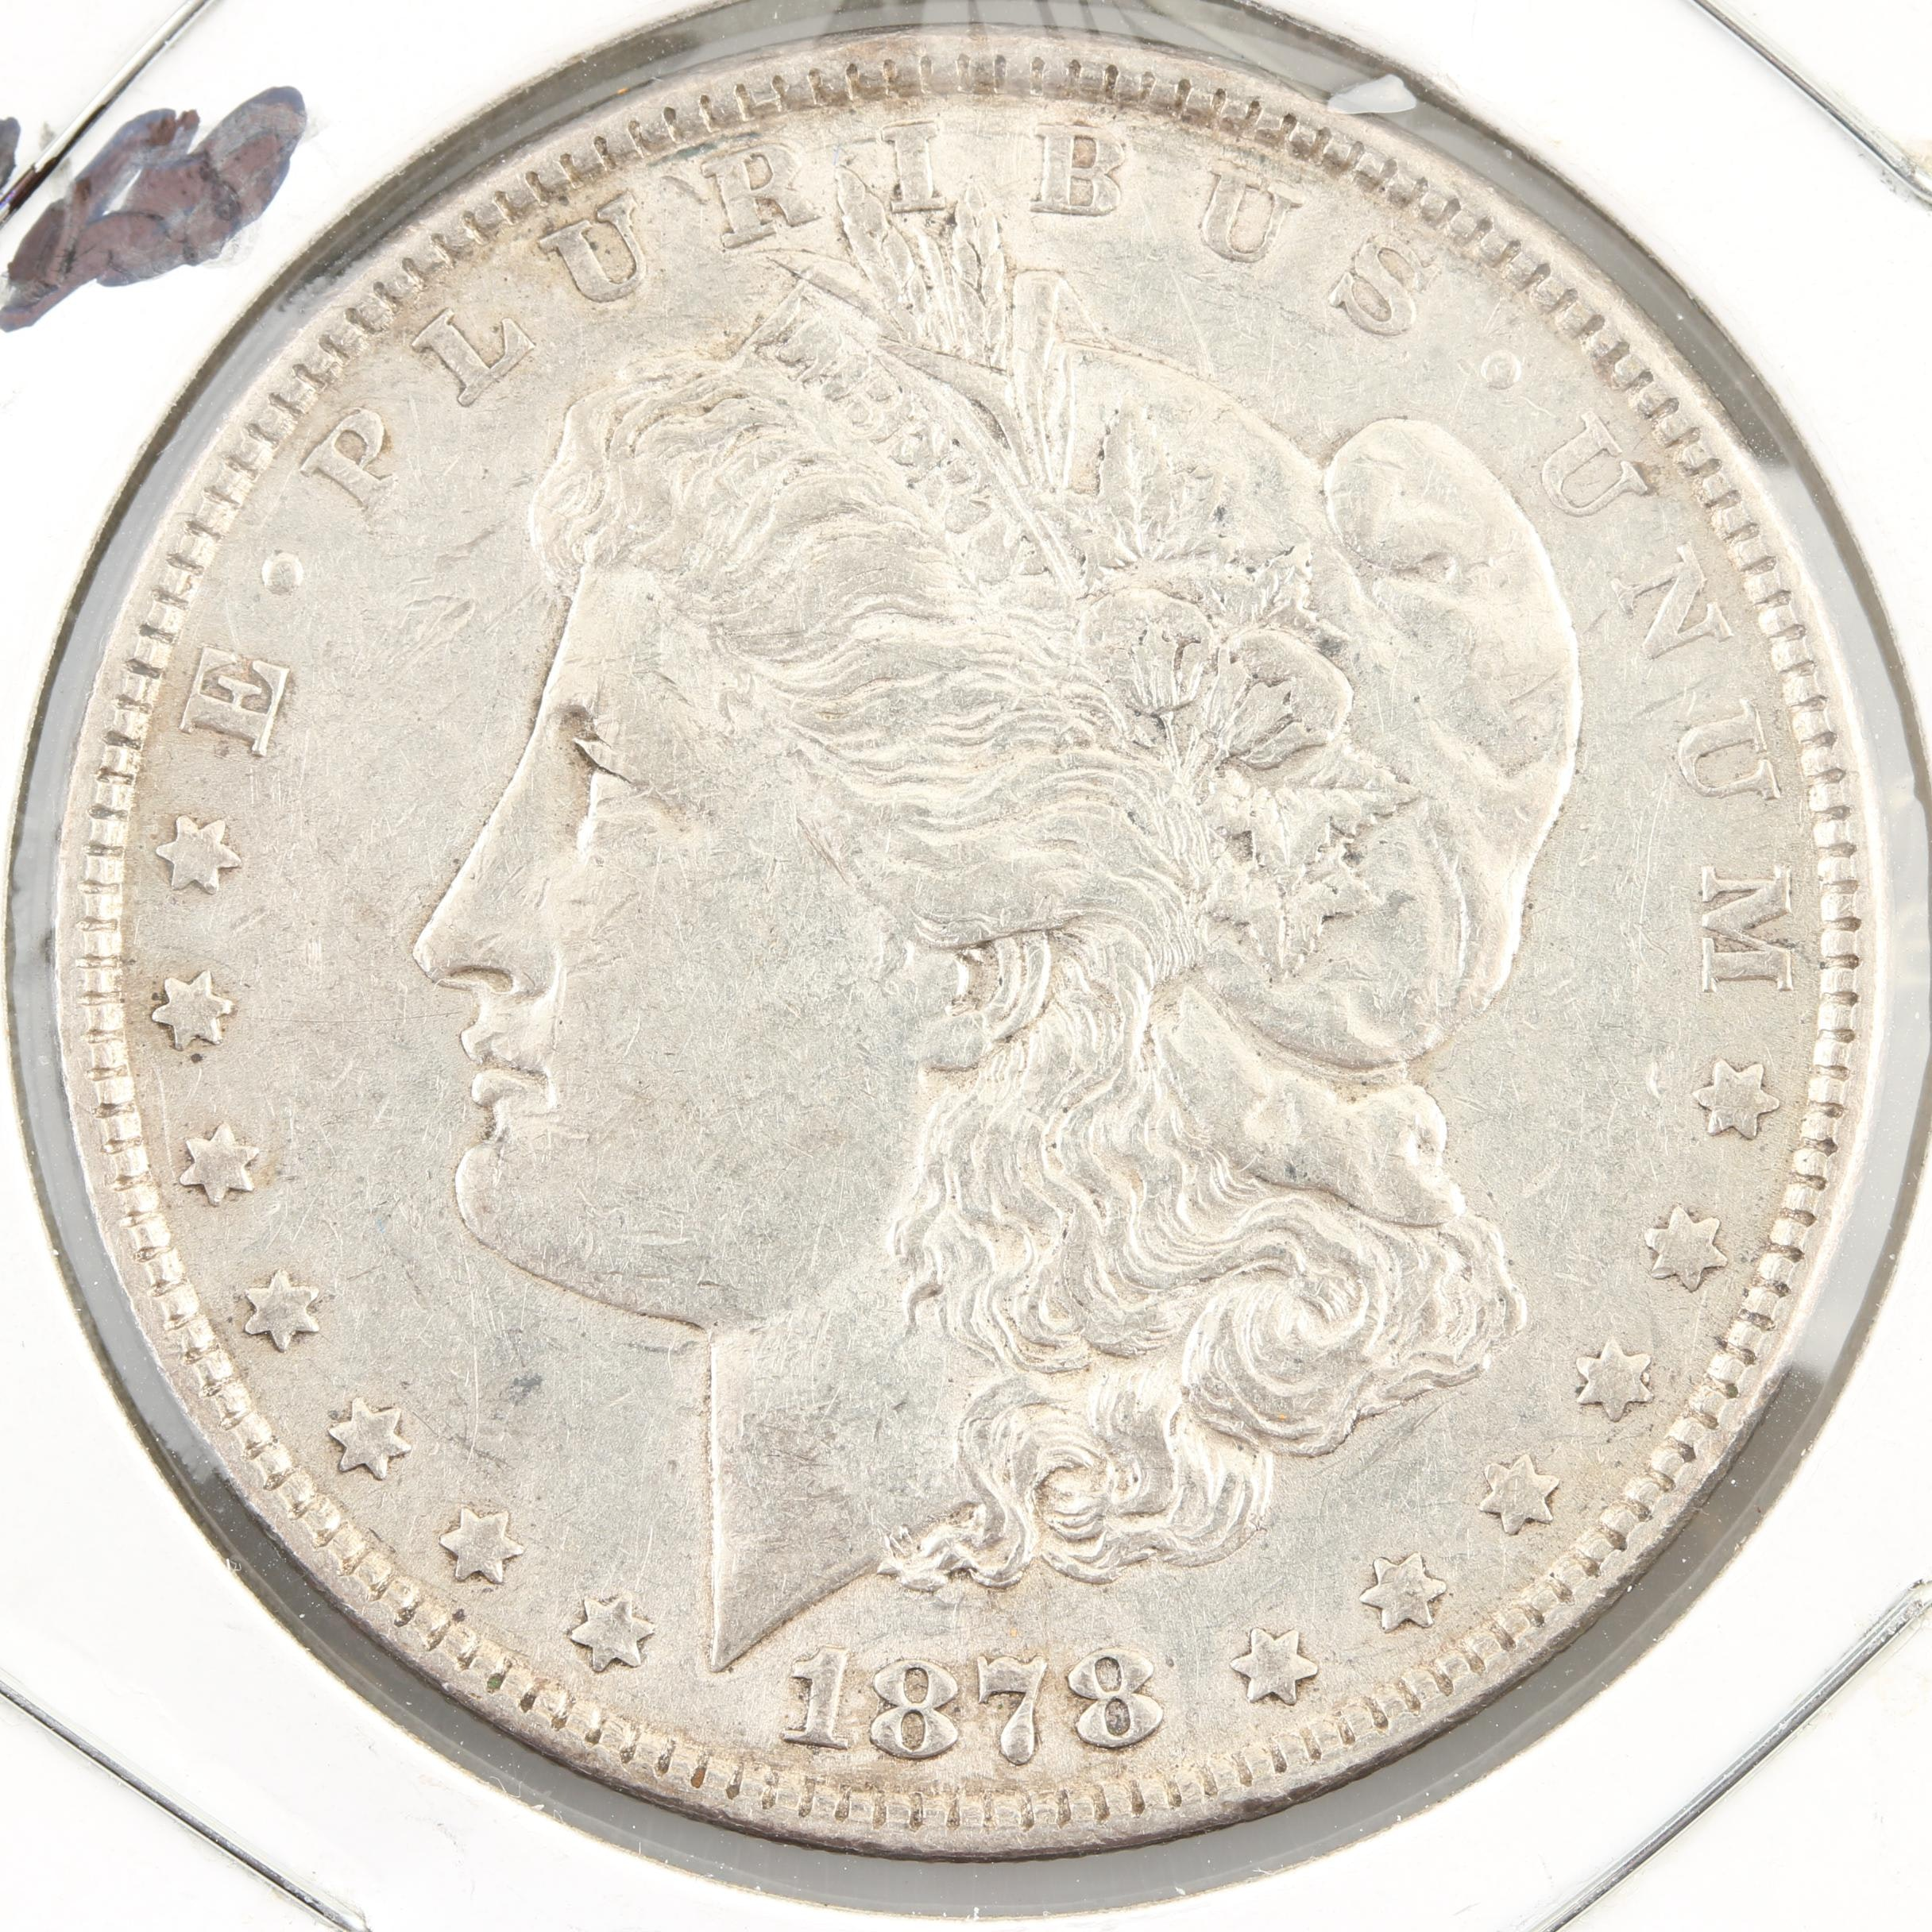 1878 Morgan Silver Dollar, Second Reverse Variety